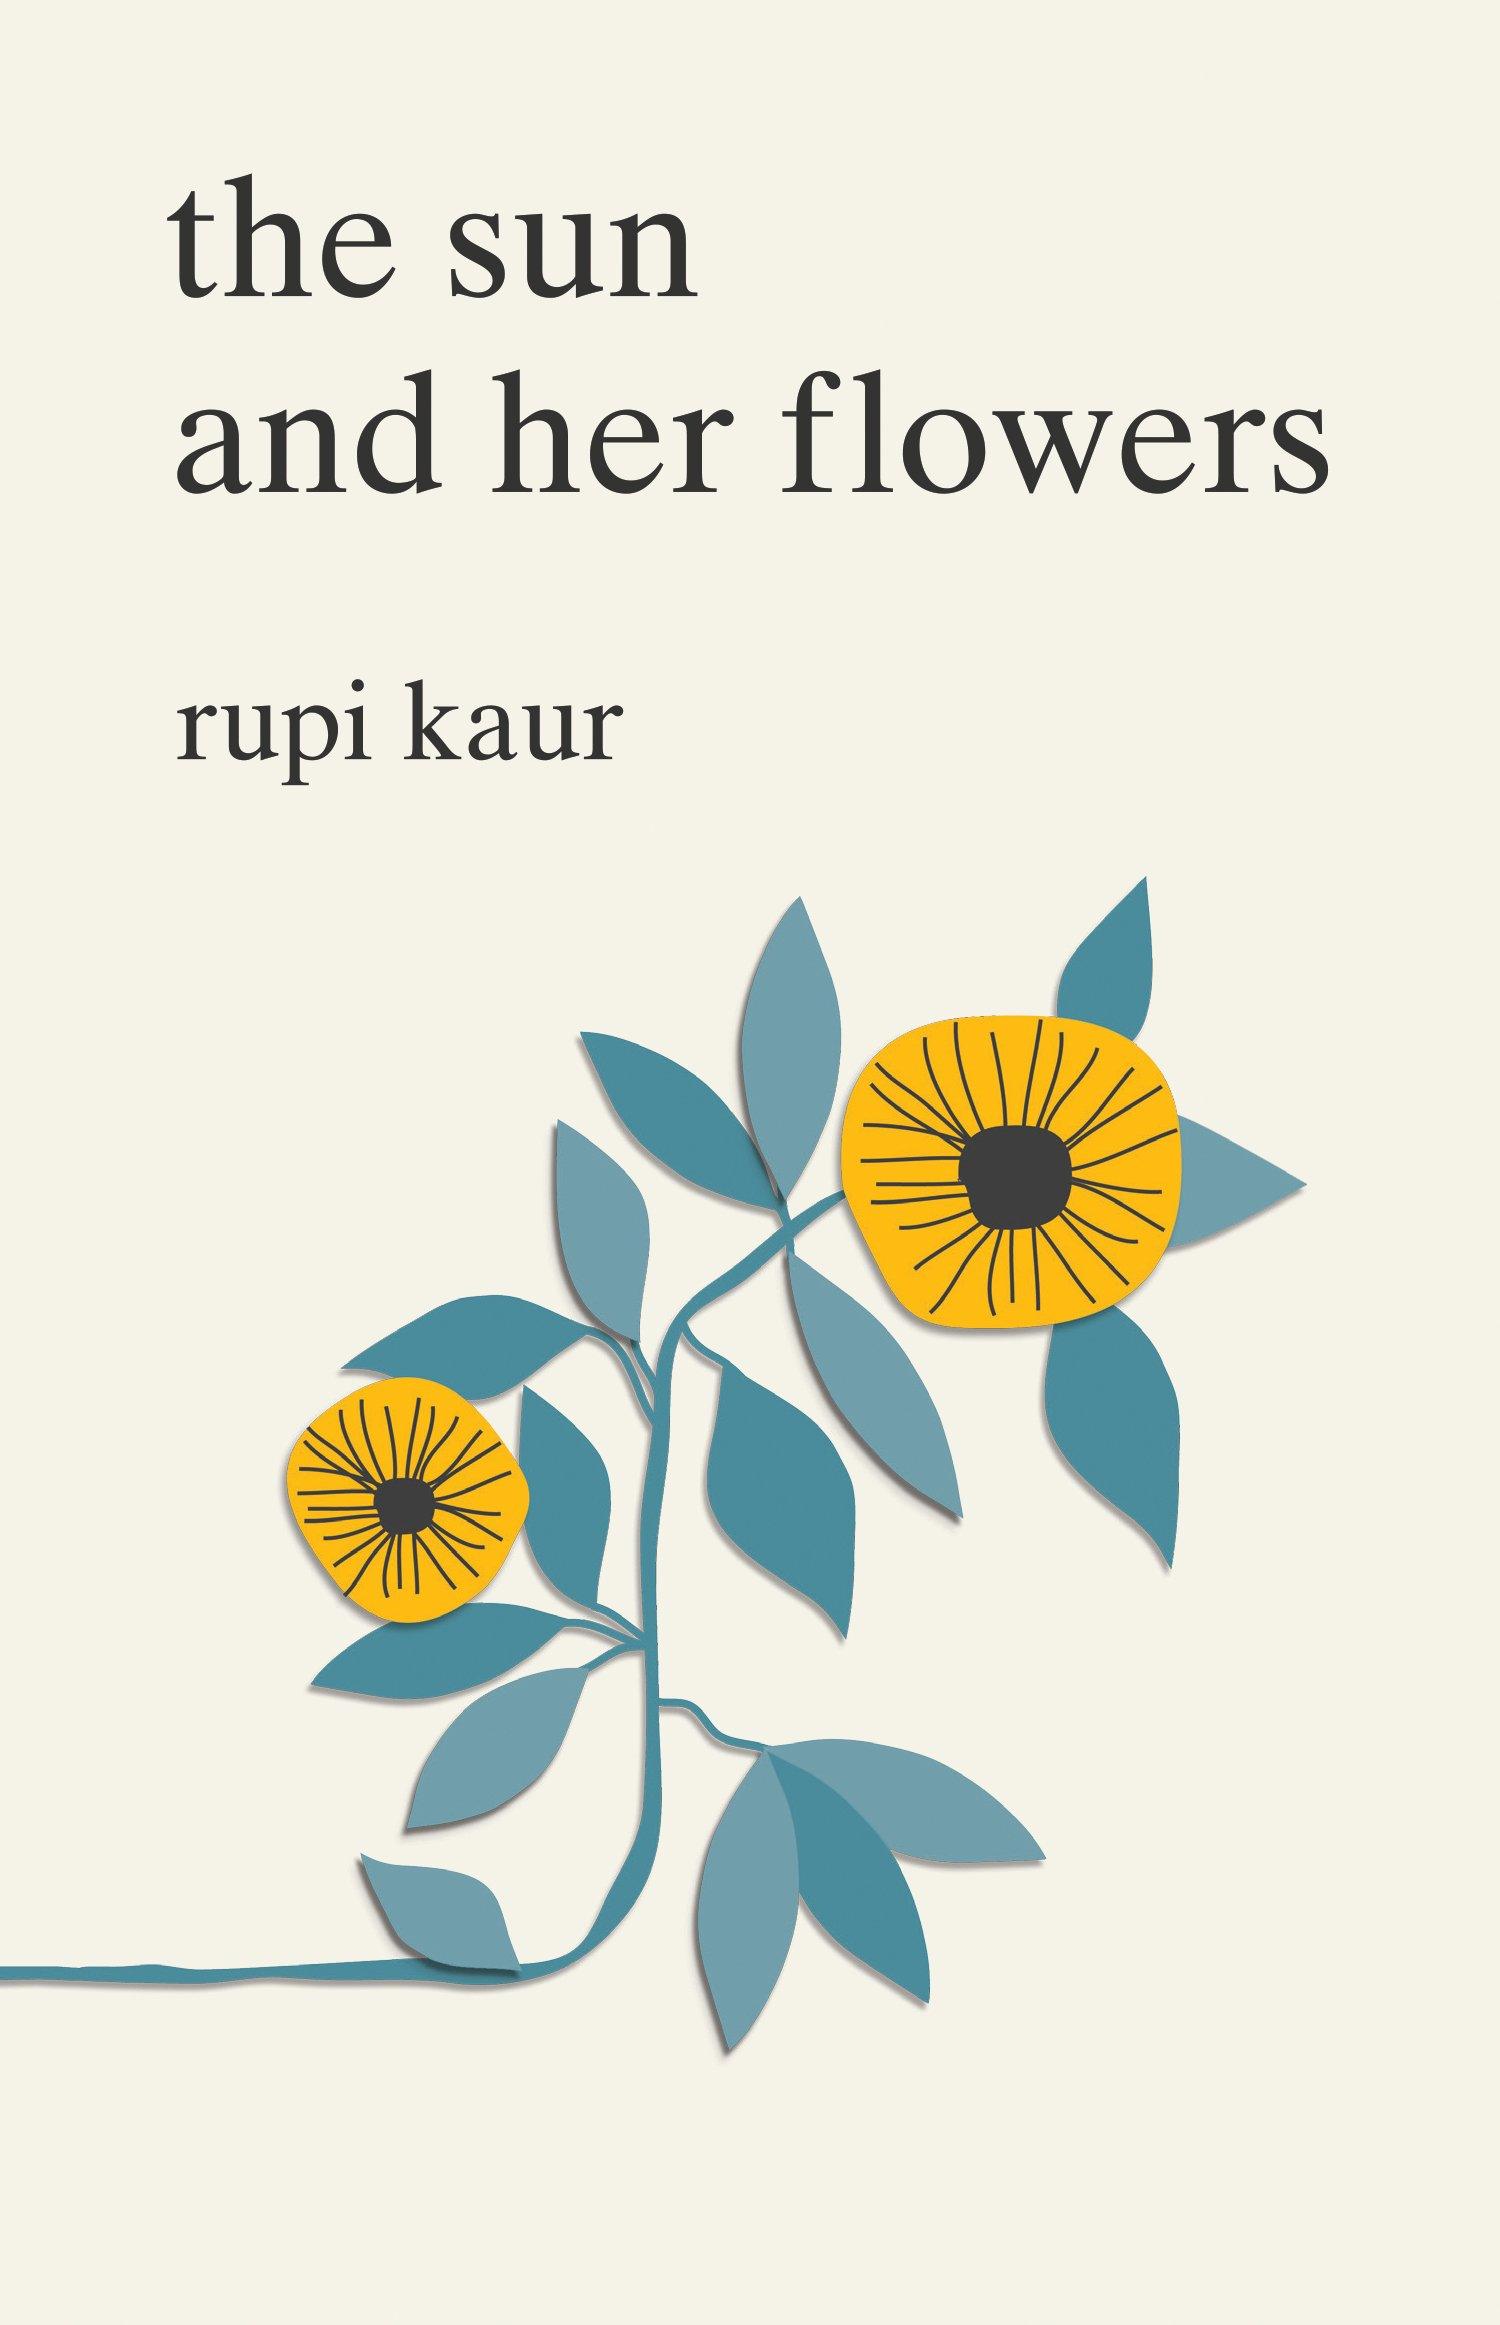 Book Review: the sun and her flowers | Imprint